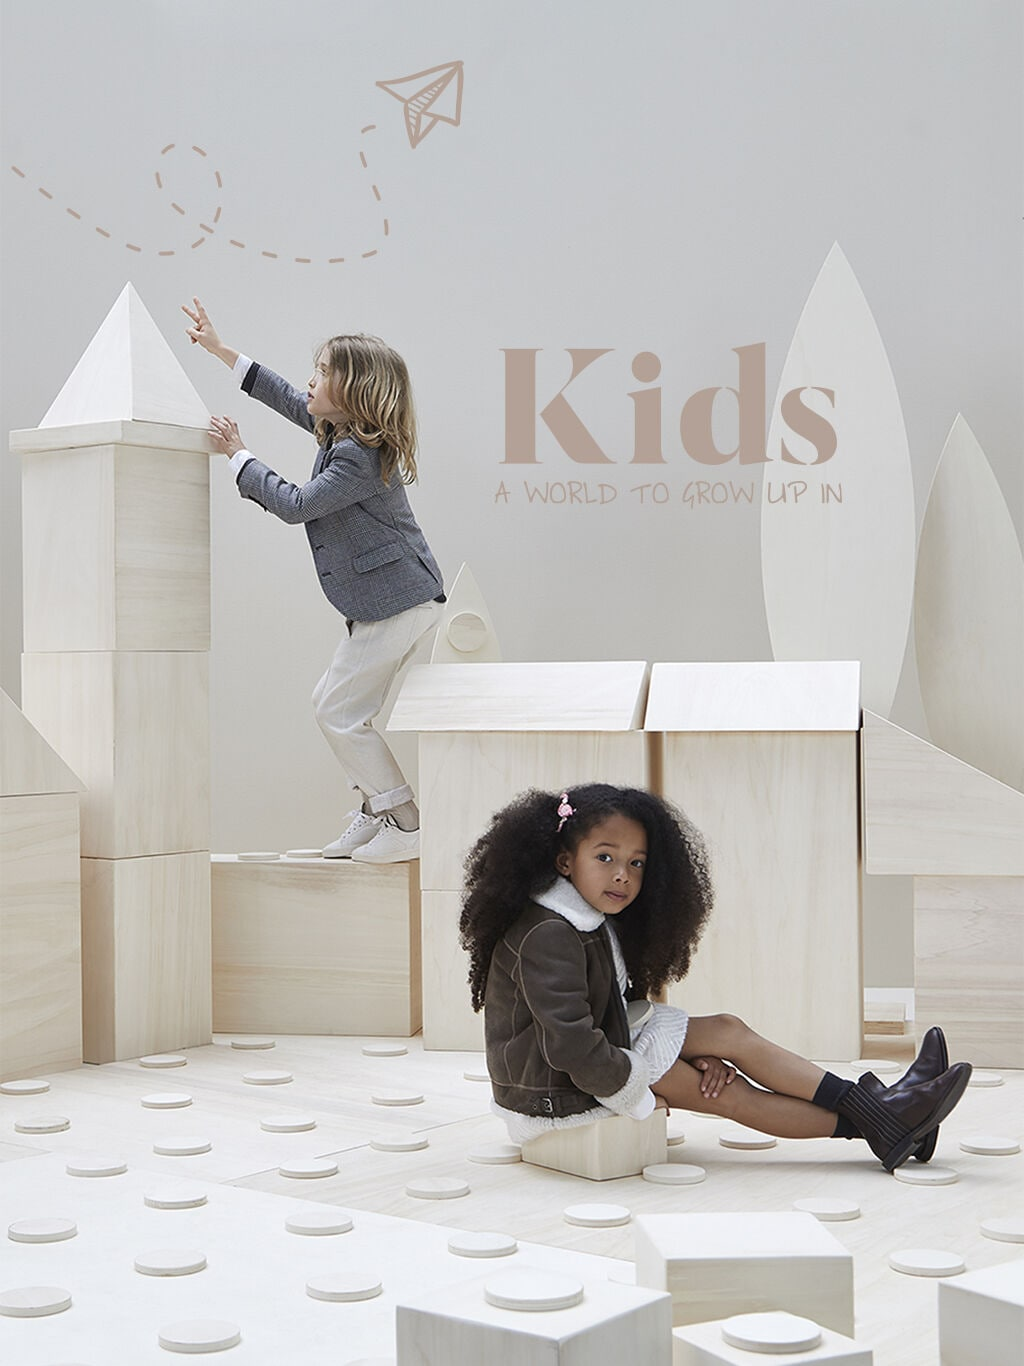 excellent quality cheap prices popular brand Kids - A world to grow up in | Brunello Cucinelli